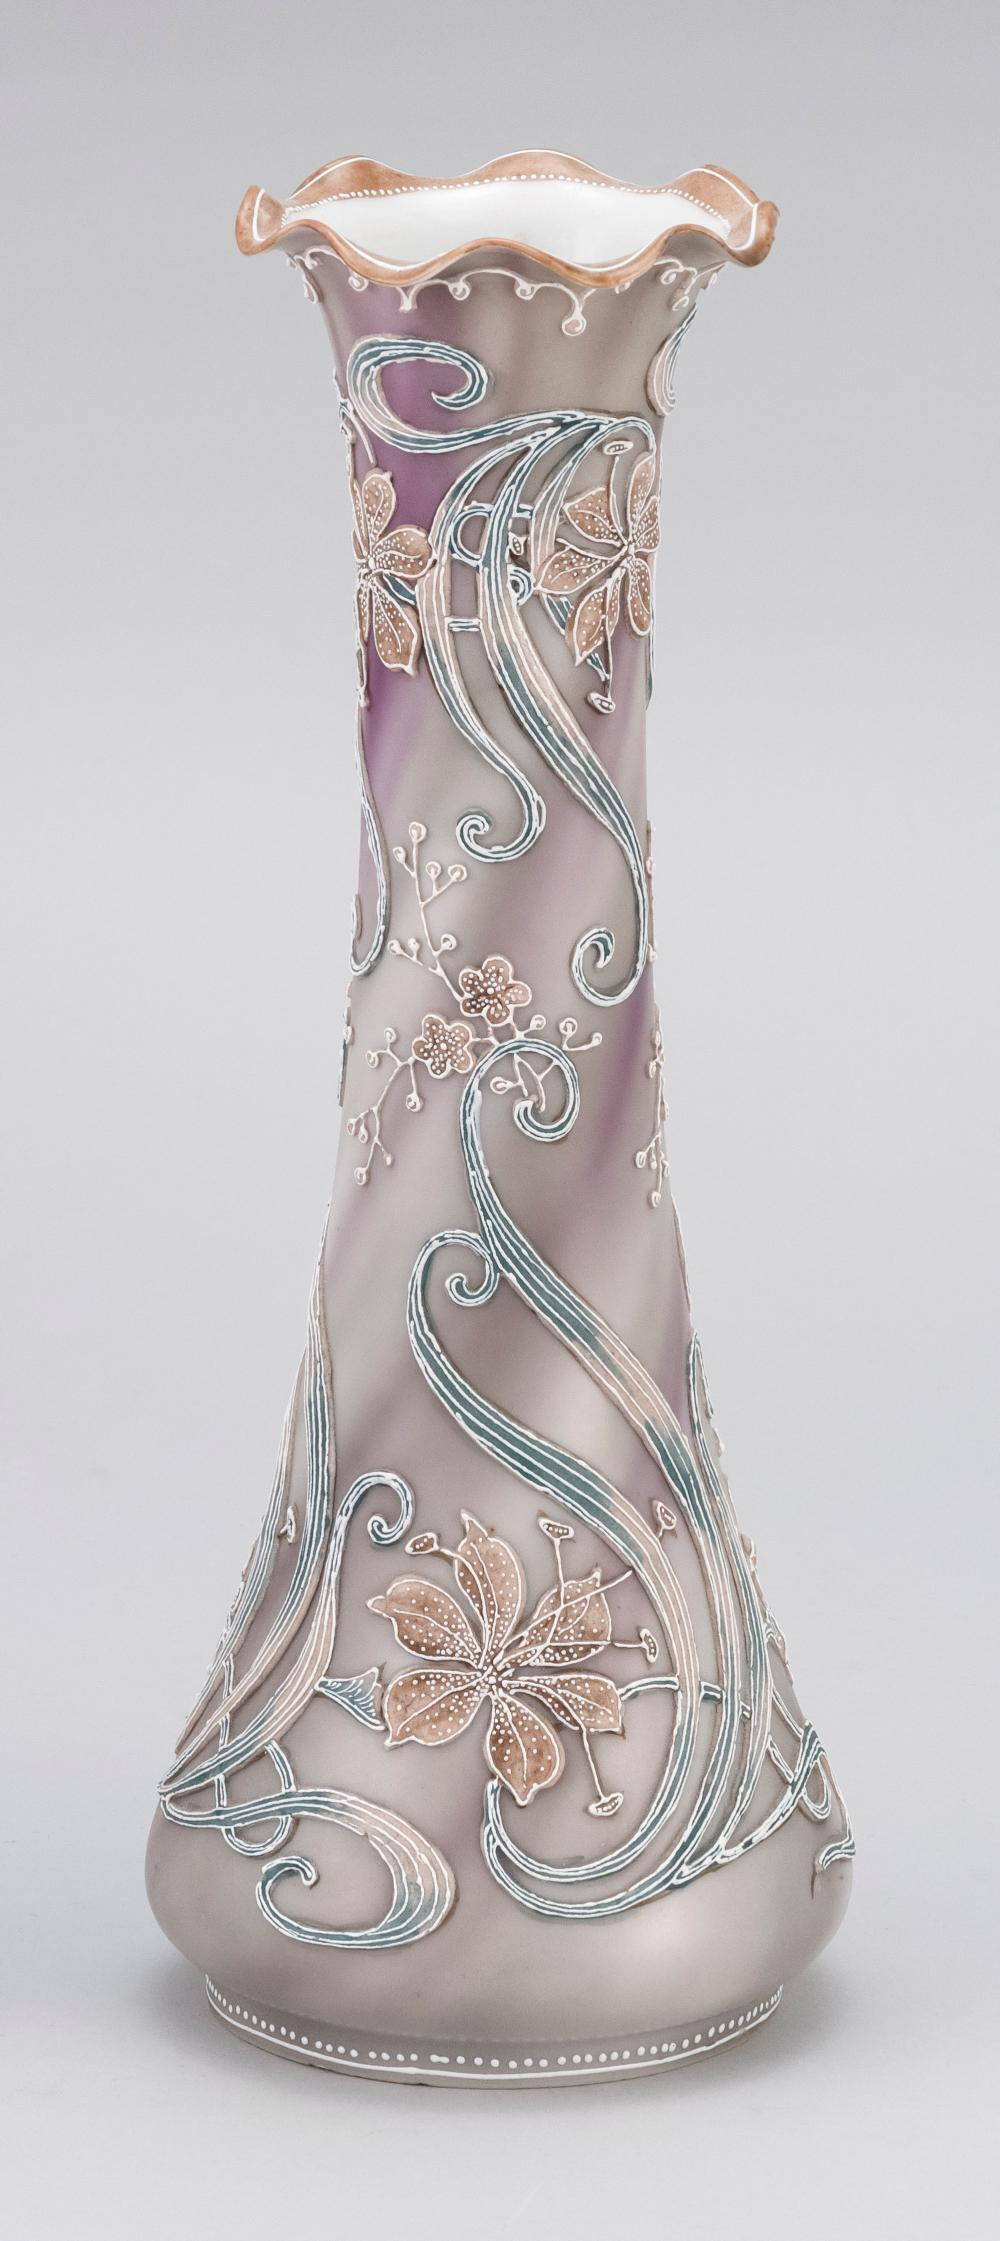 MORIAGE NIPPON PORCELAIN VASE Conical, with a floral design on a smoke gray ground. Height 11